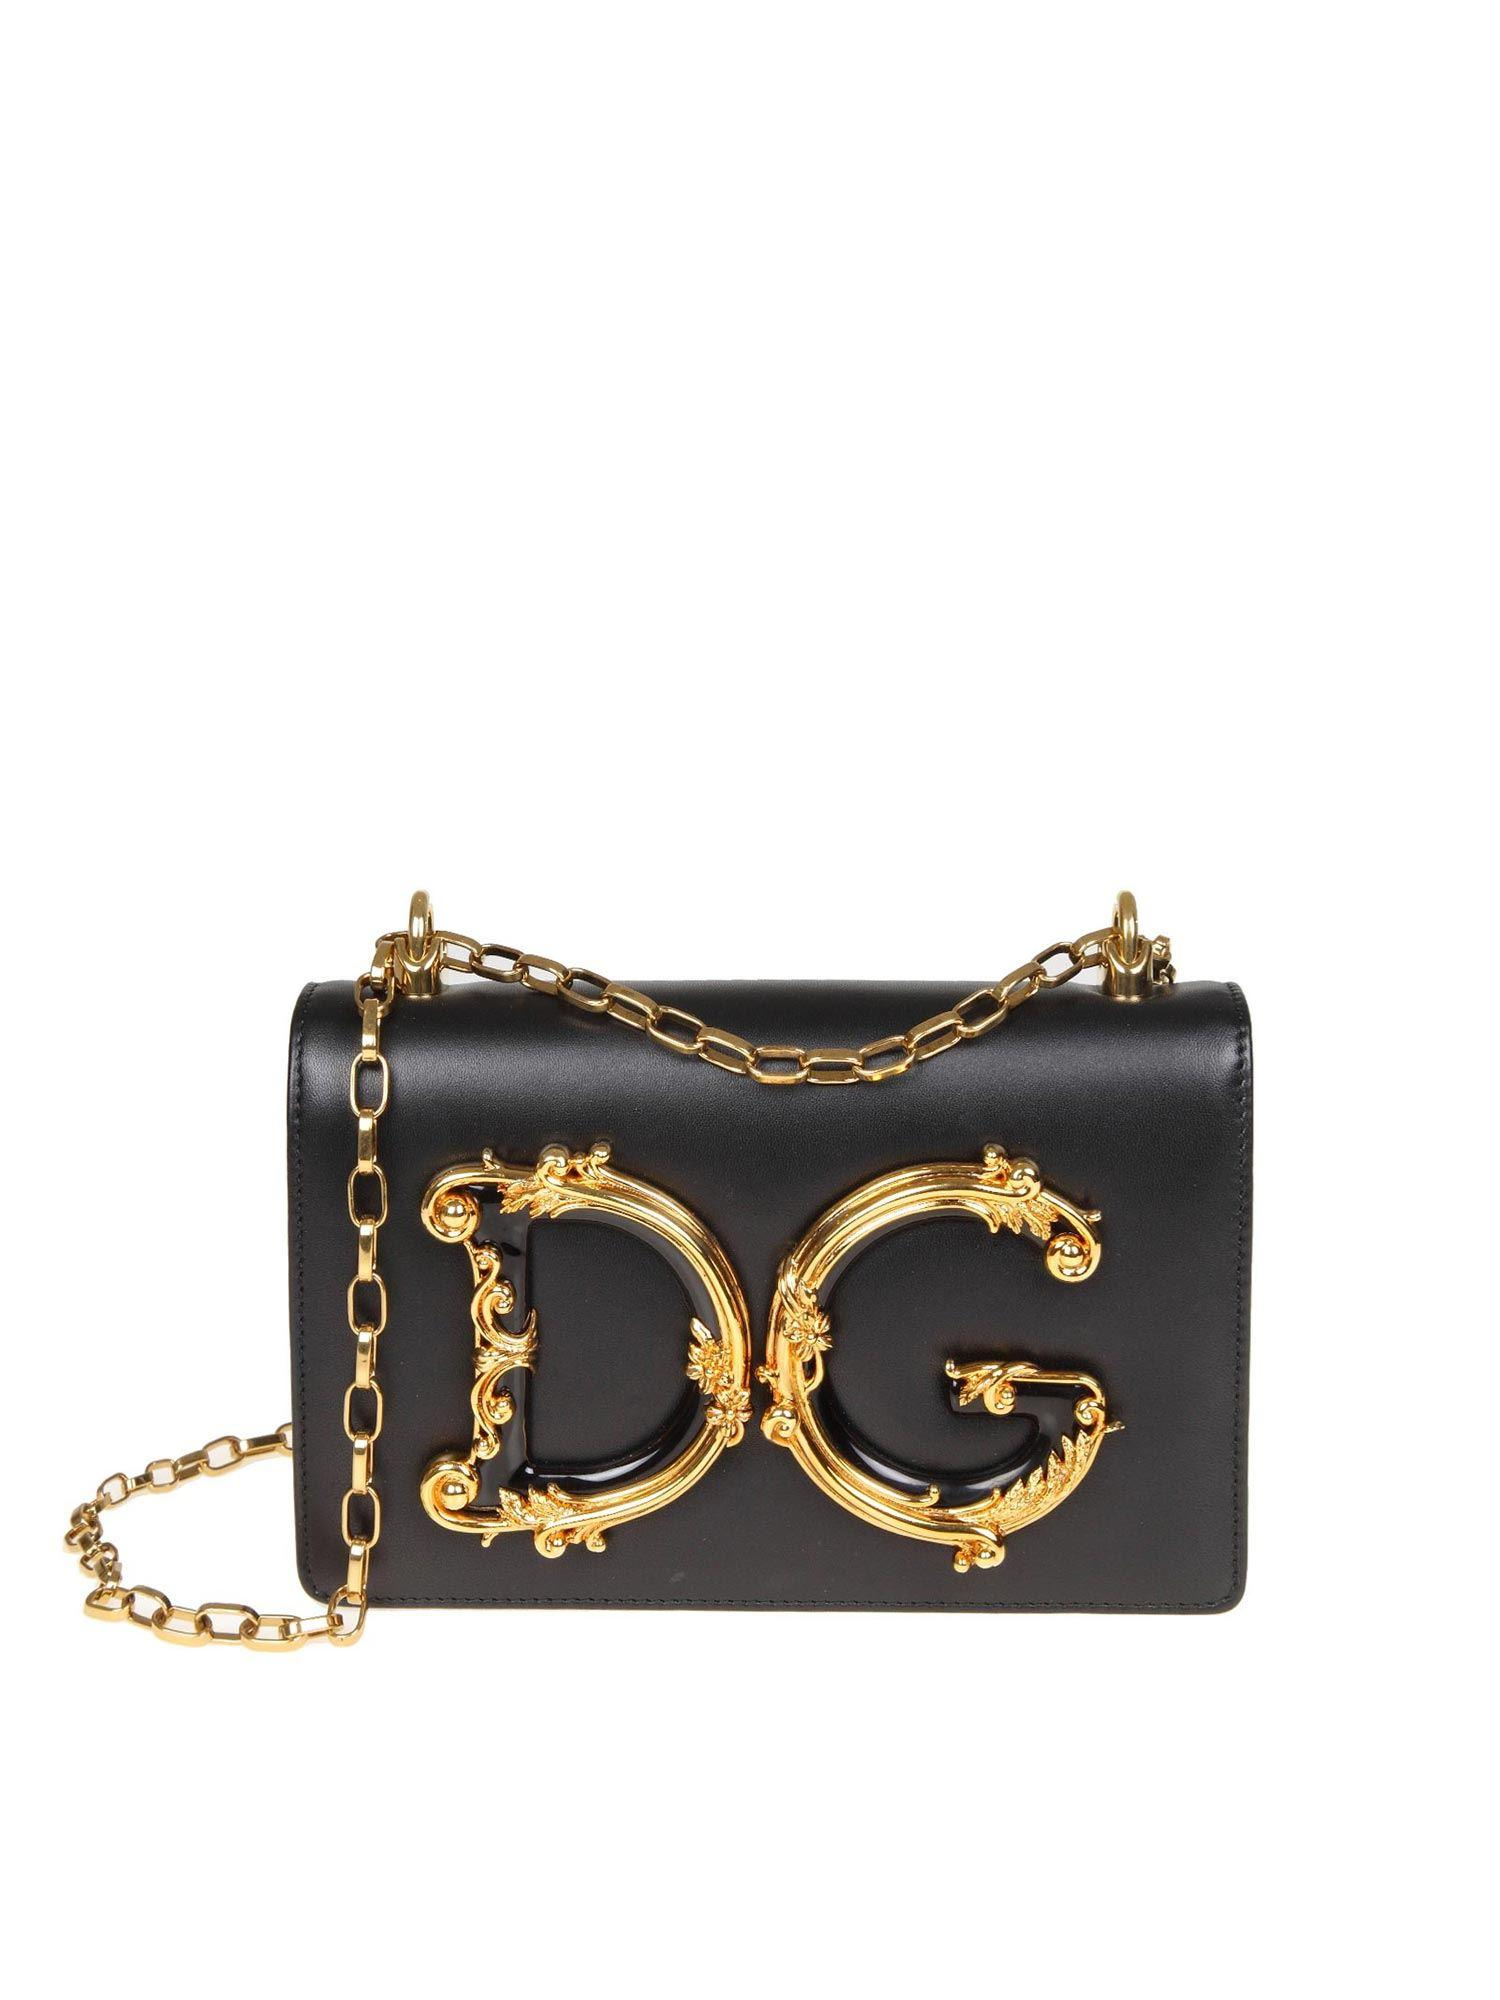 Lyst - Dolce   Gabbana Black D g Bag With Baroque Logo in Black 1a56b0c51d23f